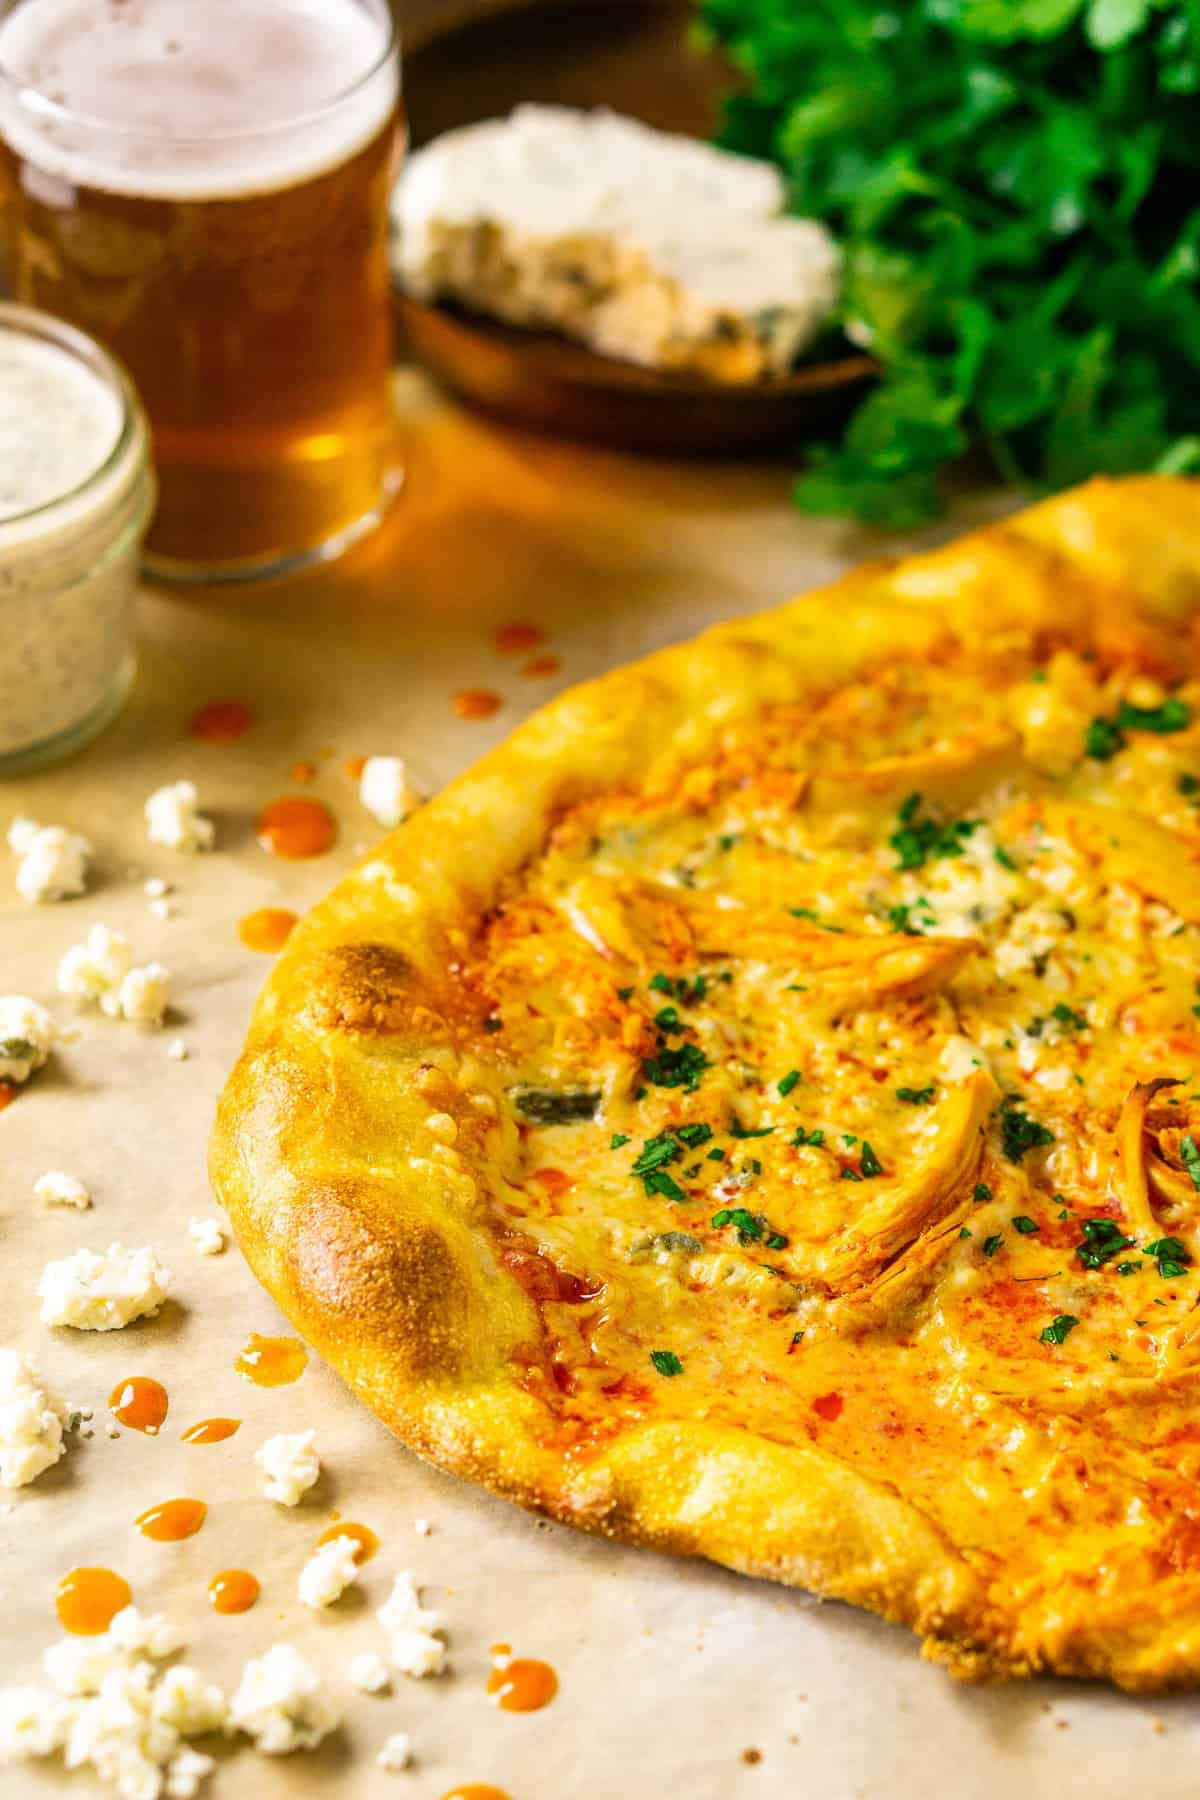 The Buffalo chicken pizza on parchment paper with ranch and a beer to the side with a slab of blue cheese and fresh parsley.